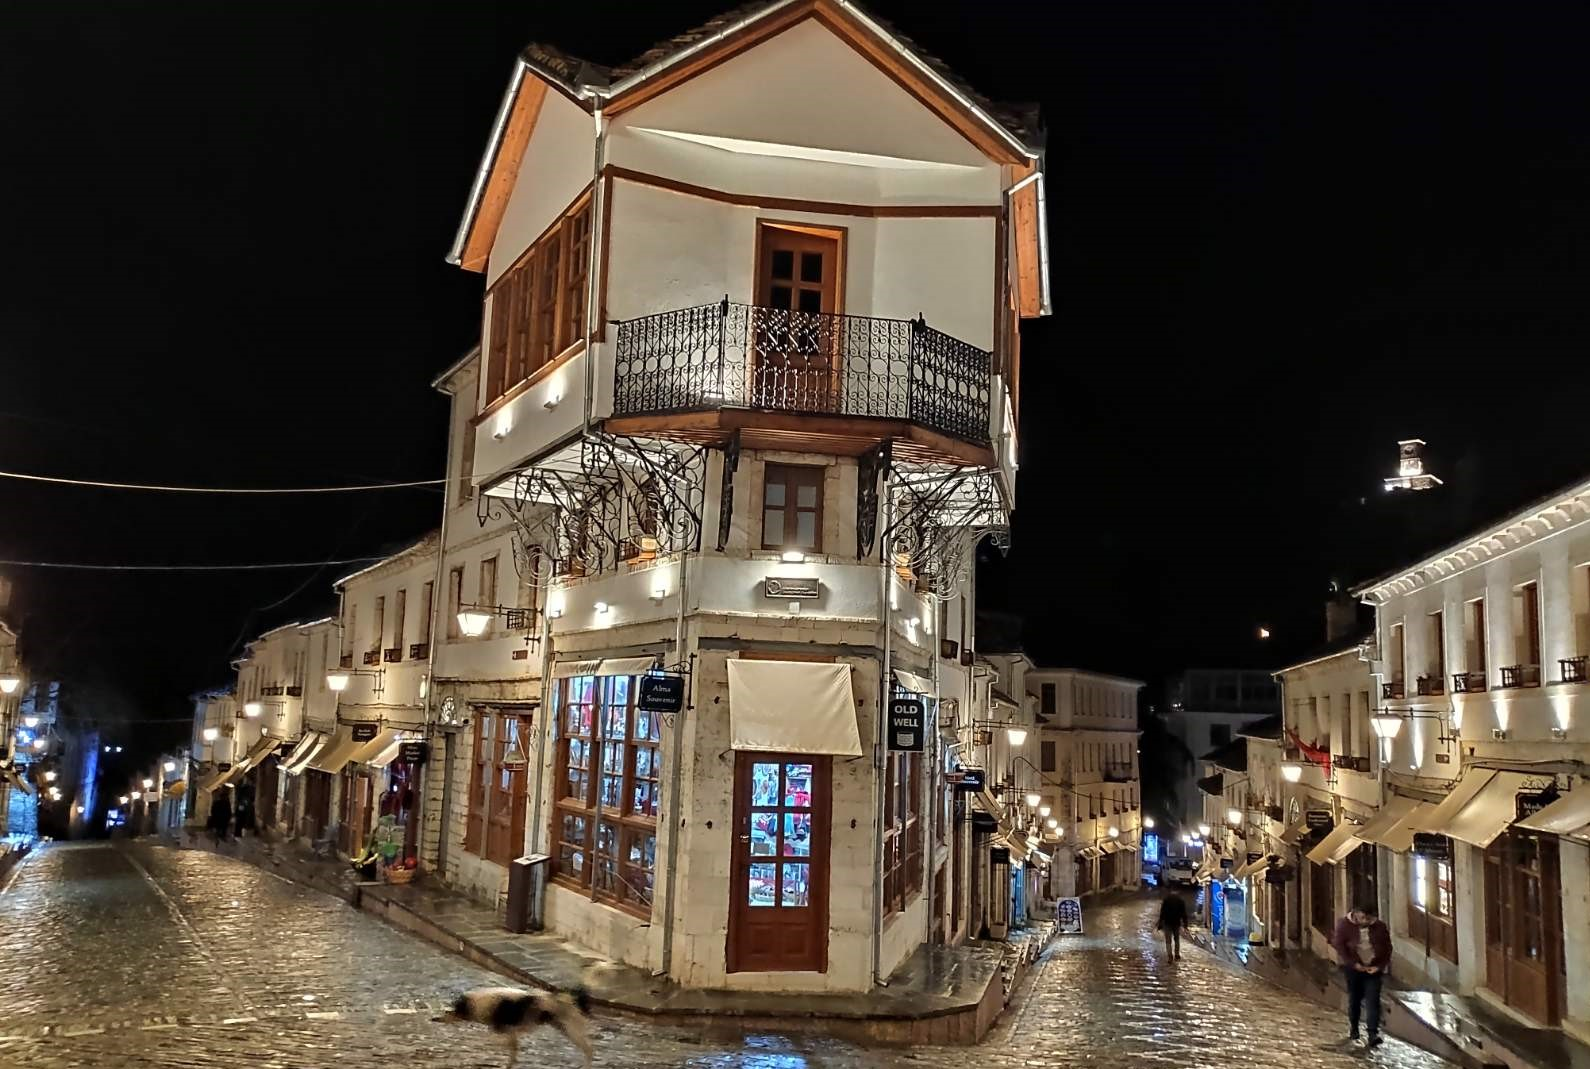 DAY 4: In one day two UNESCO Wonder sites to be explored - Gjirocastro and Berat